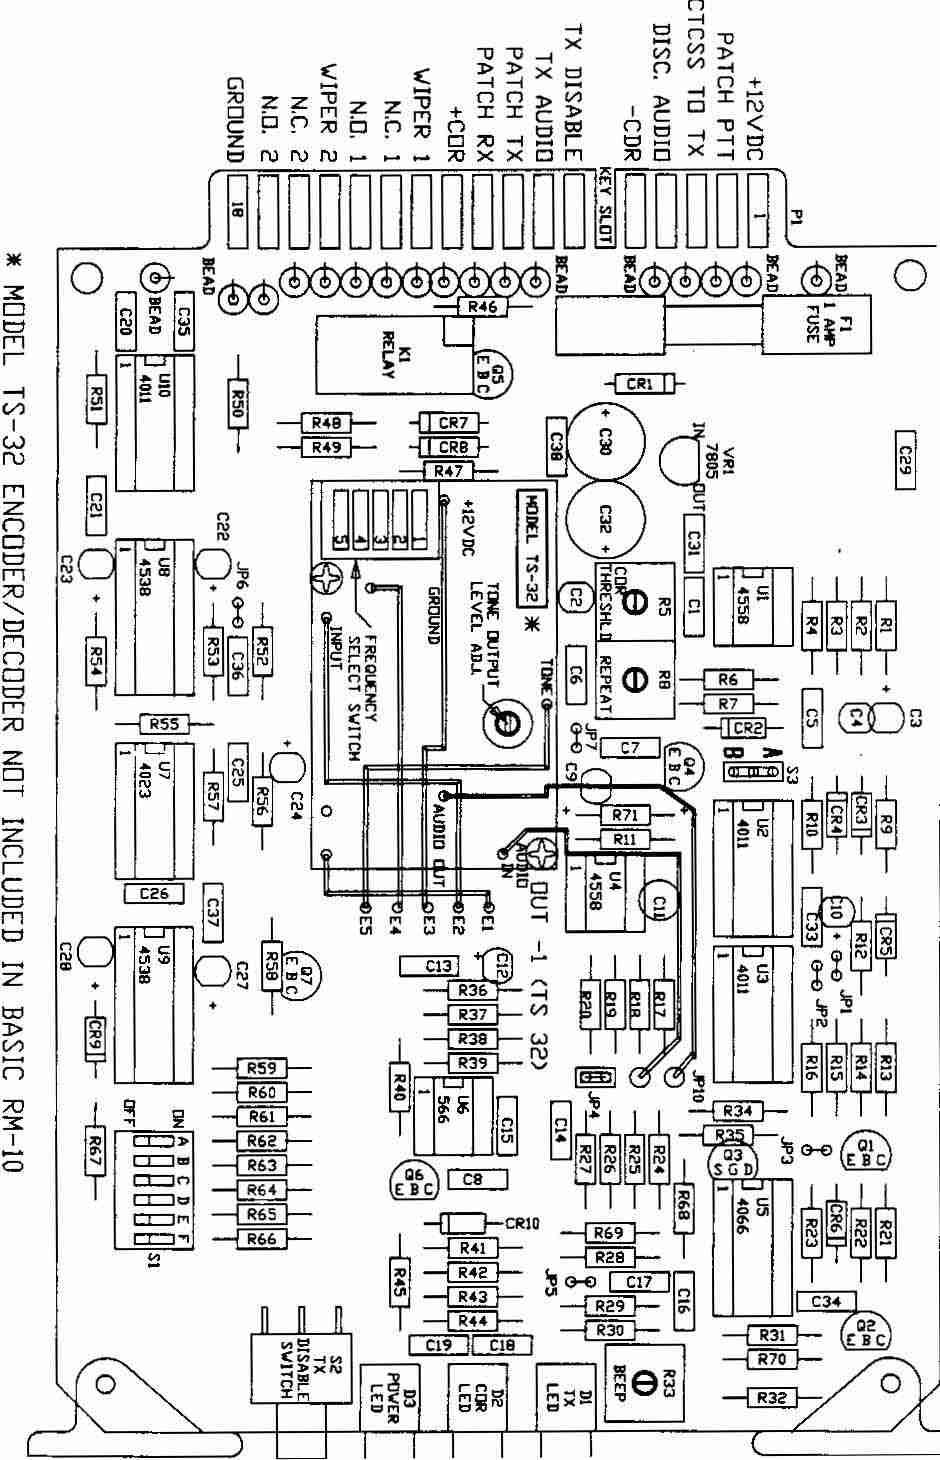 DIAGRAM] 1992 Llv Wiring Diagram FULL Version HD Quality Wiring Diagram -  PVFF.ARESTINTORI.ITArestintori.it